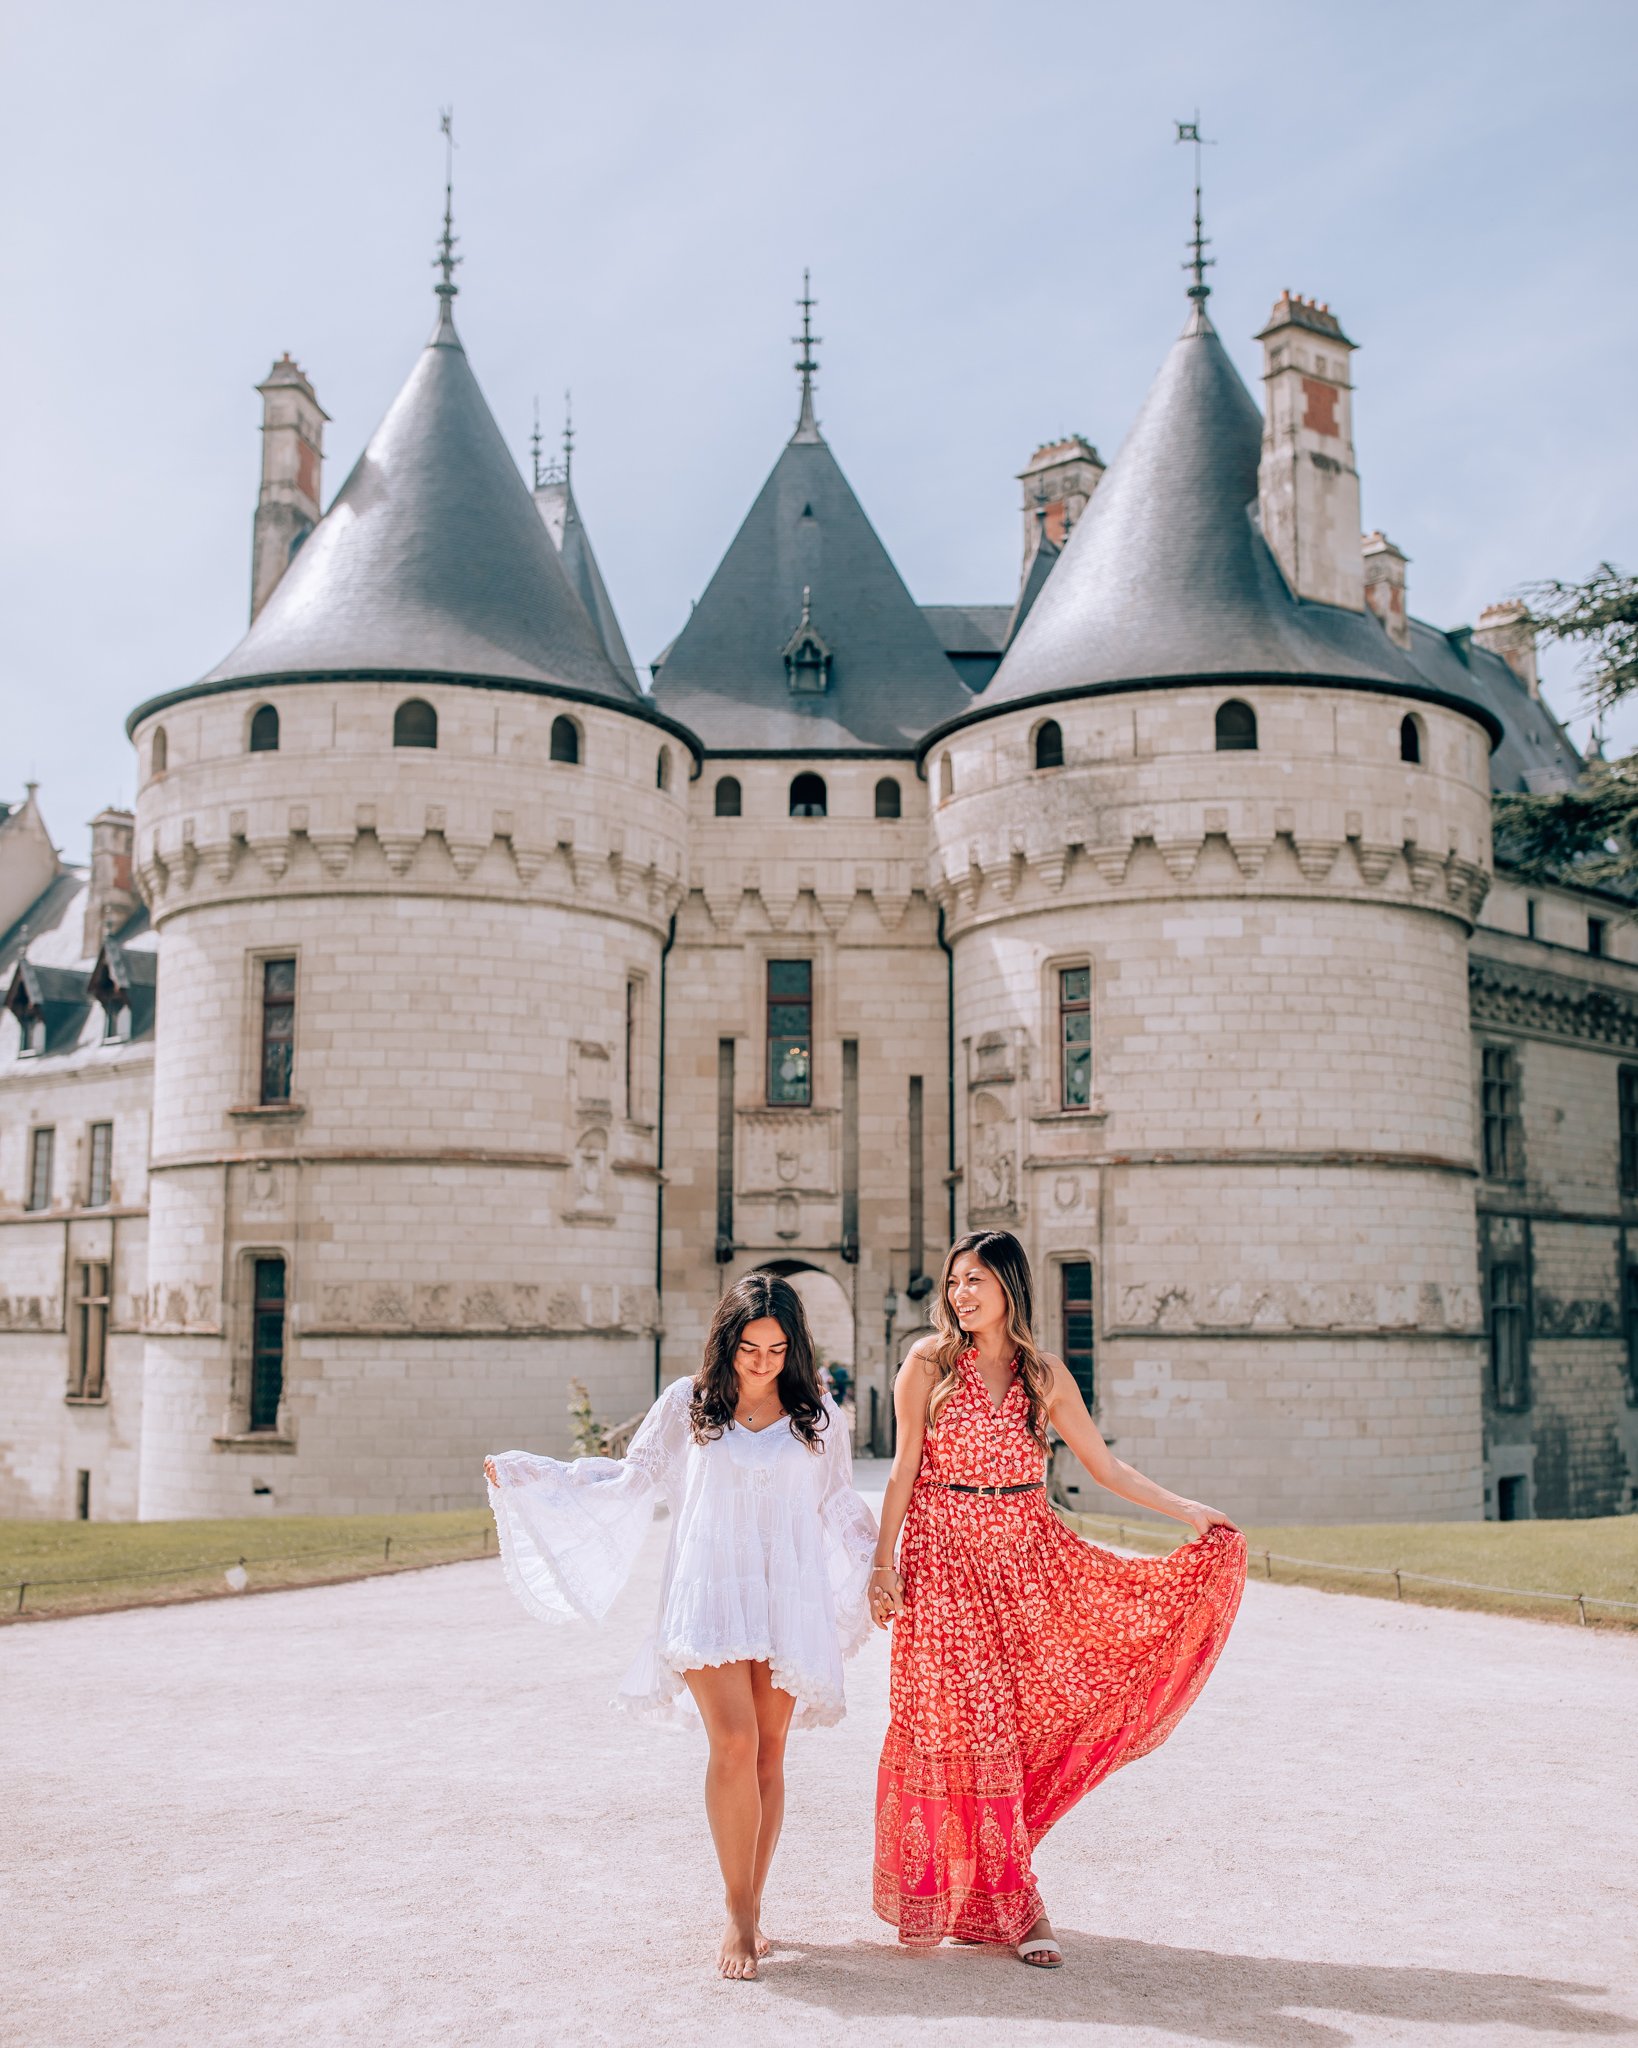 10 BEST THINGS TO DO IN COGNAC, FRANCE